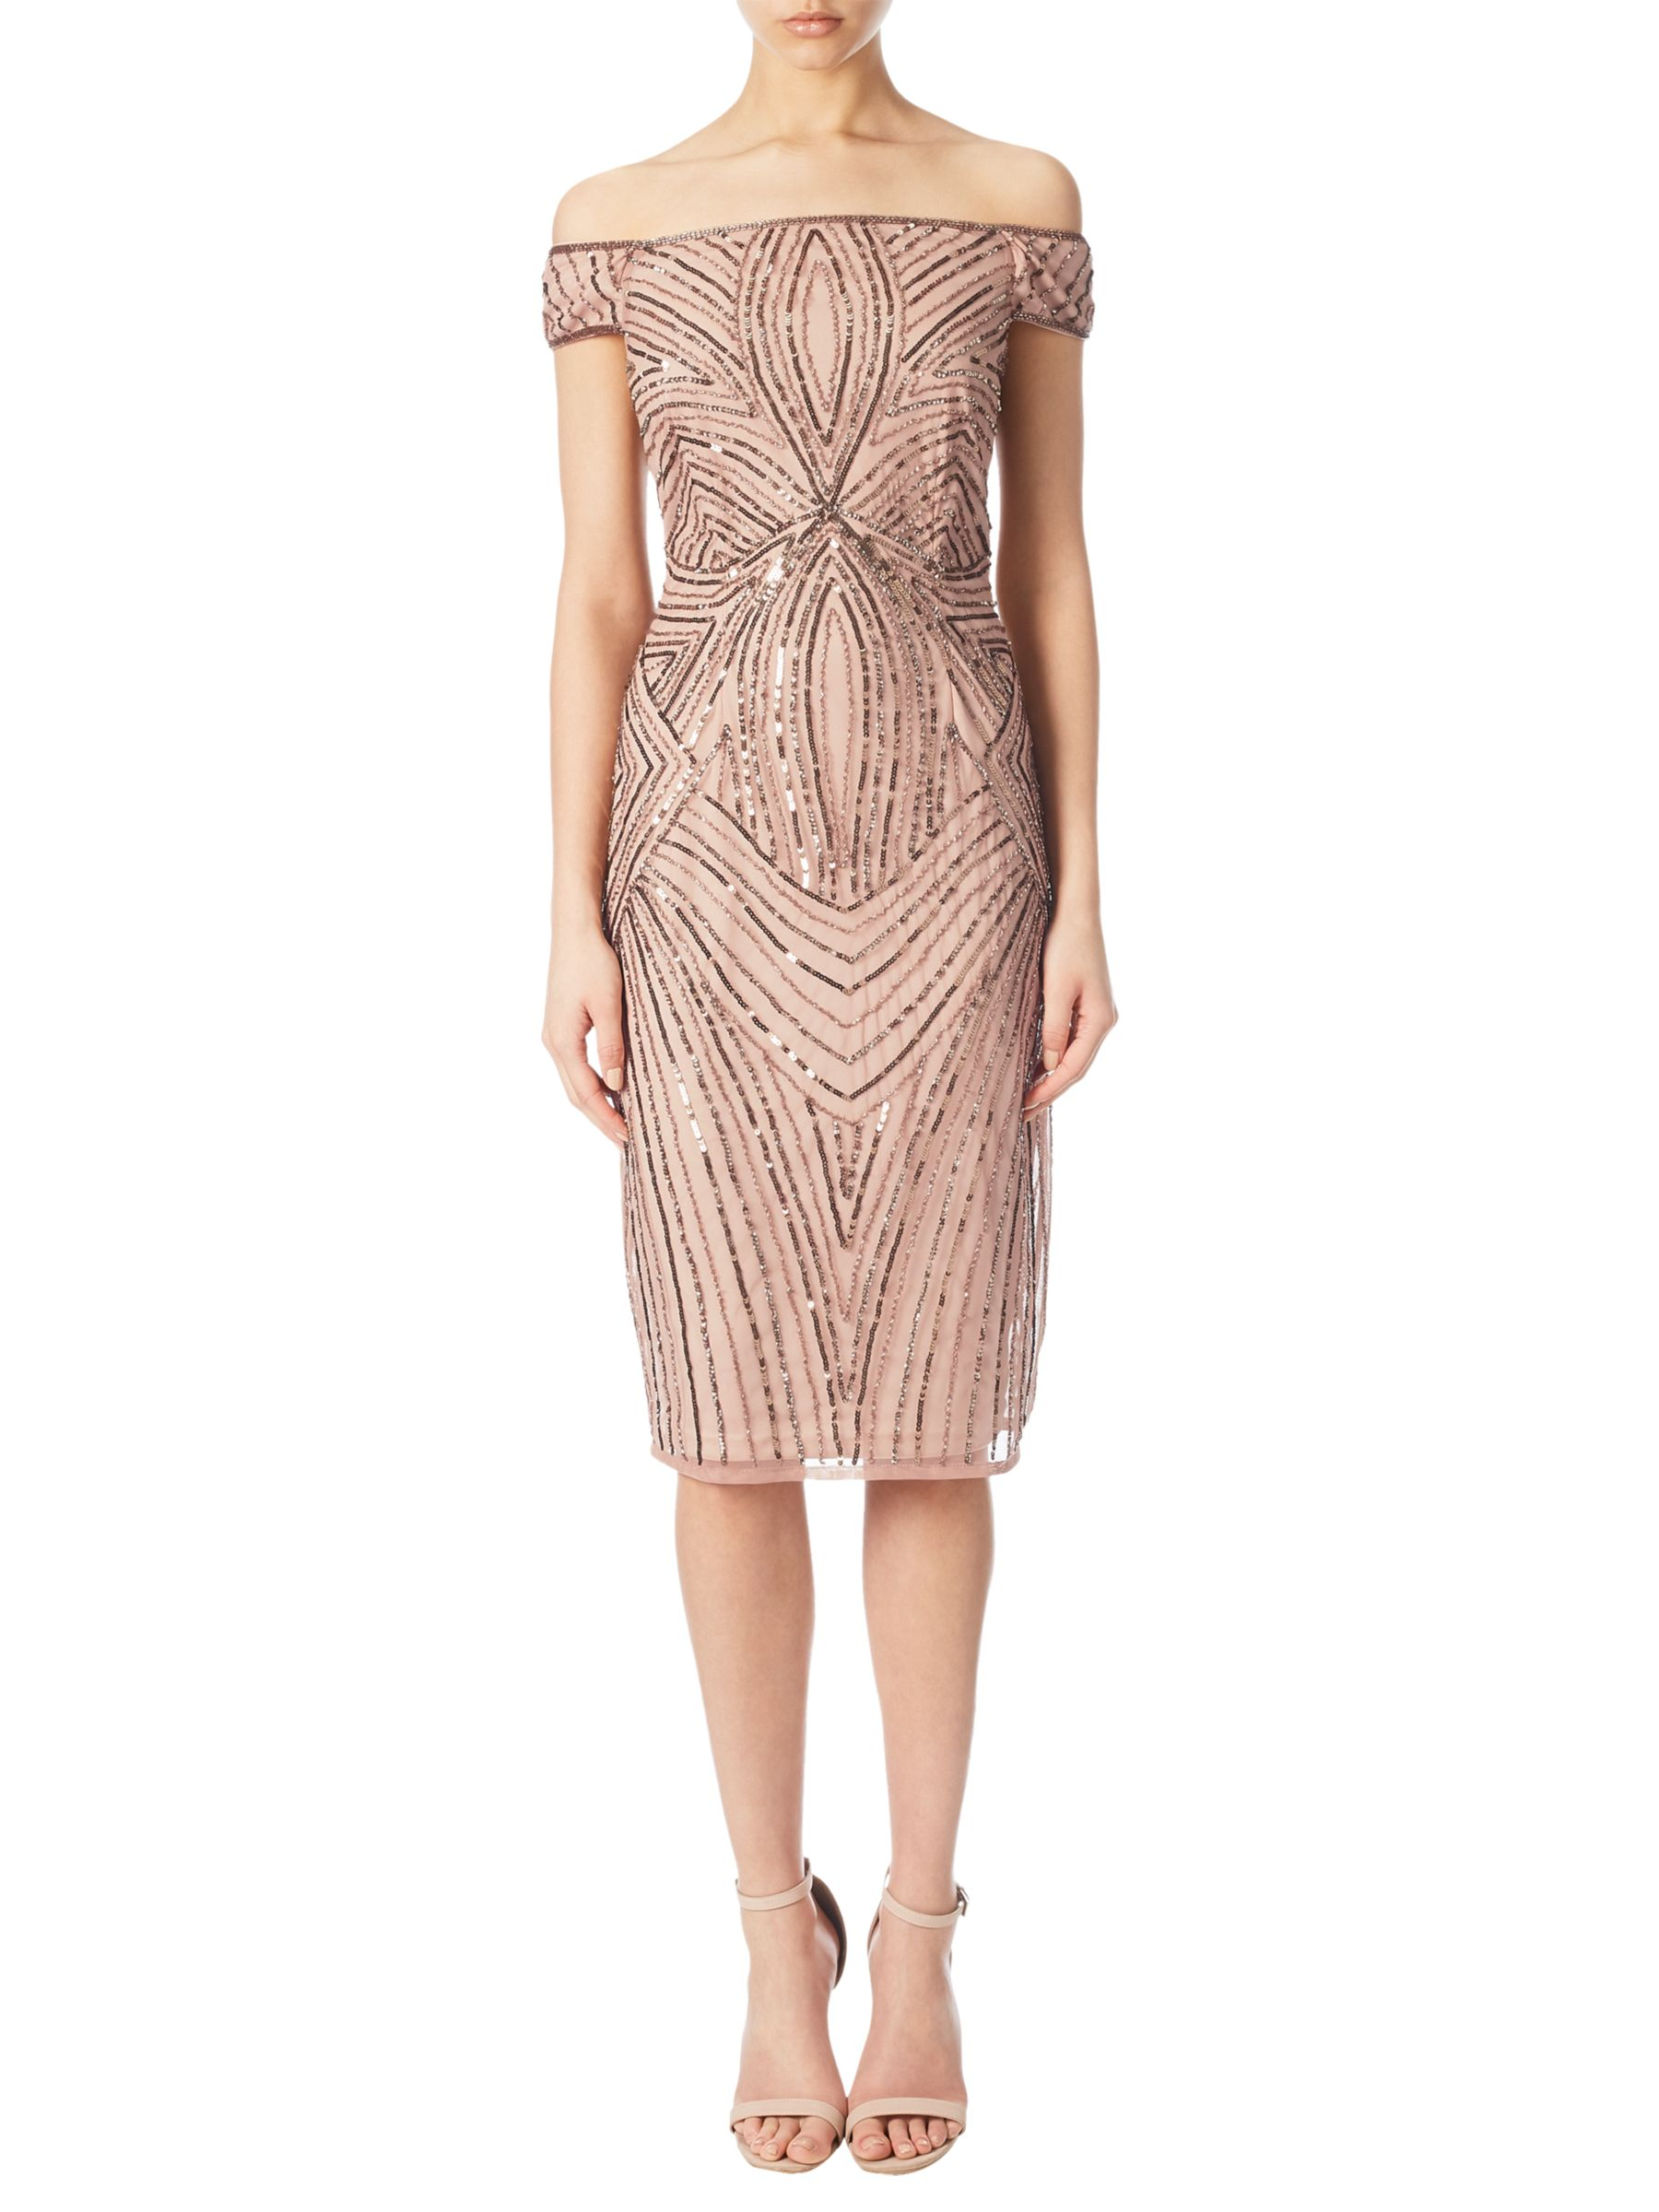 Fun 1920s Flapper Dresses & Quality Flapper Costumes Adrianna Papell Off Shoulder Beaded Cocktail Dress Rose Gold £170.00 AT vintagedancer.com